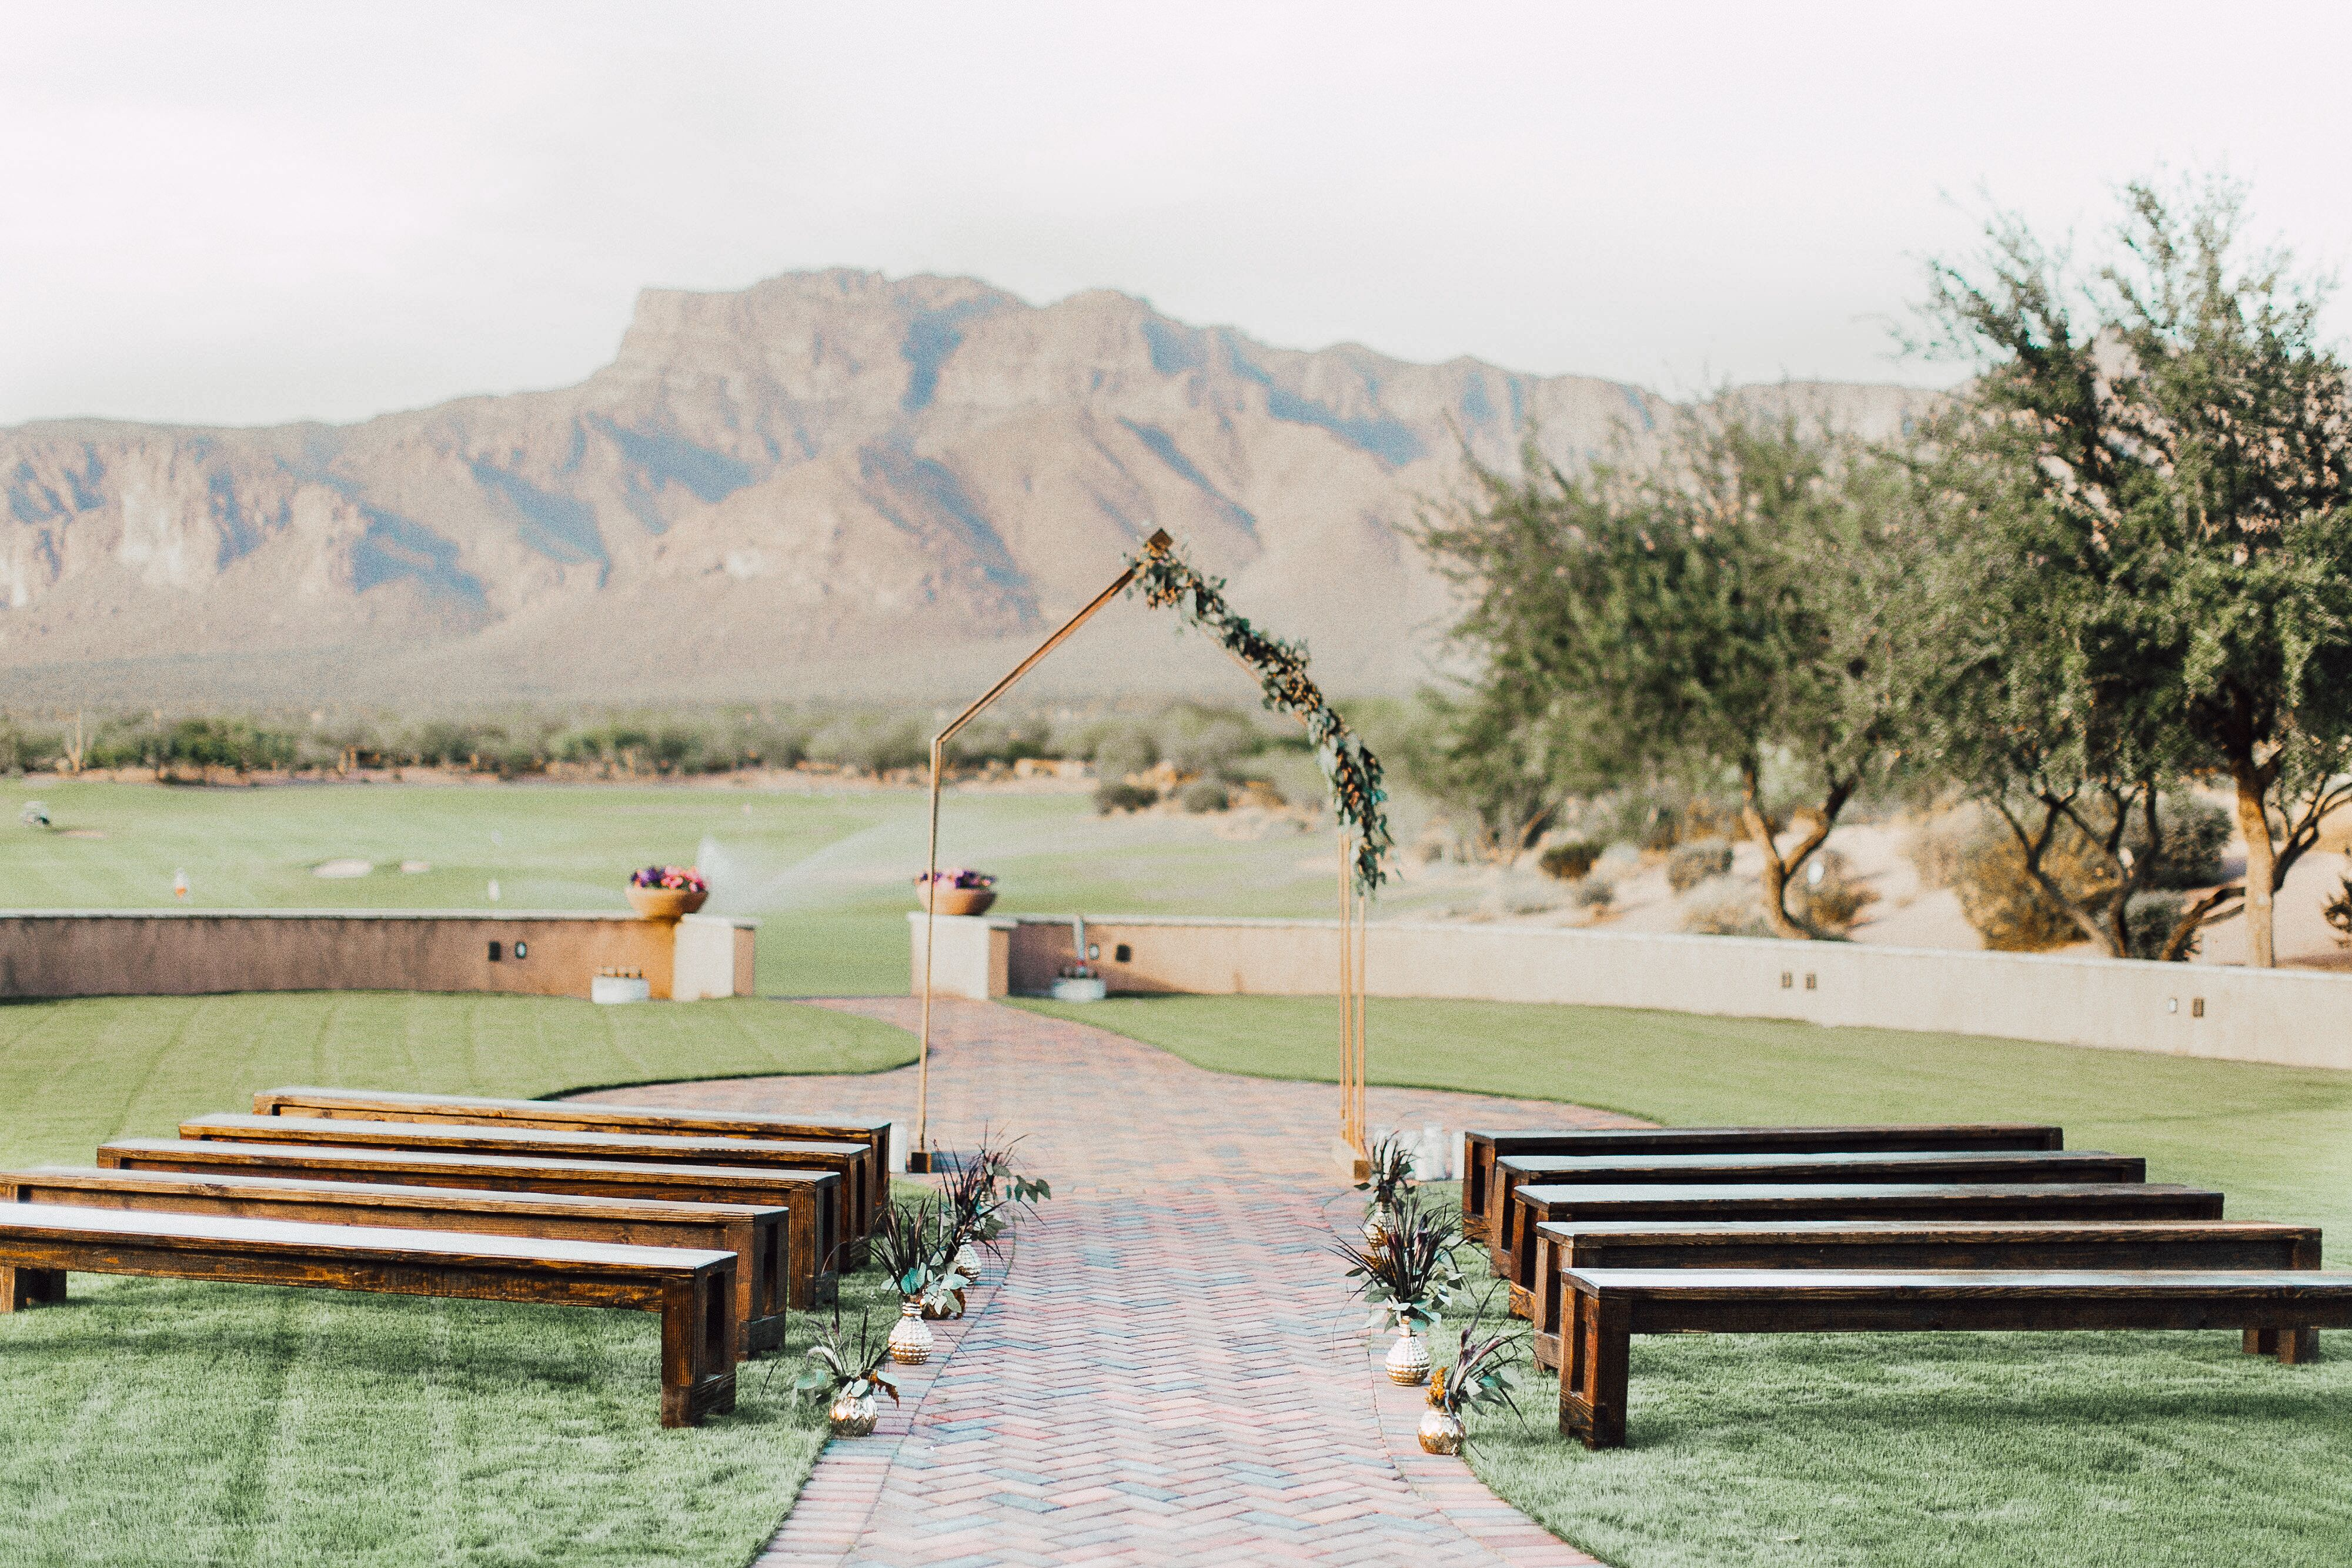 Wedding Rentals in Show Low, AZ - The Knot